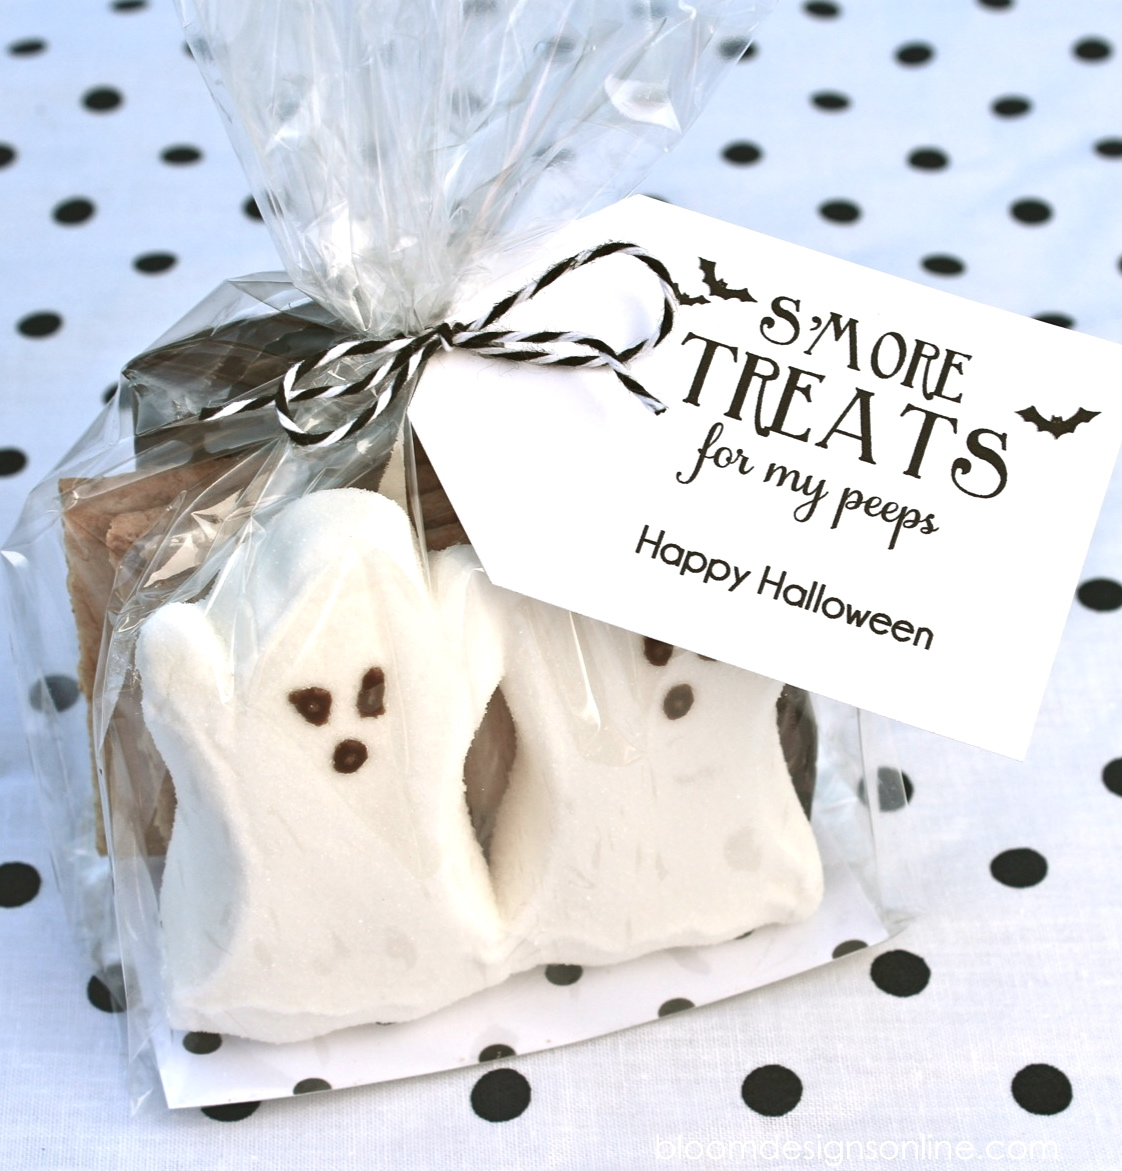 Smore Treats For My Peeps - Bloom Designs